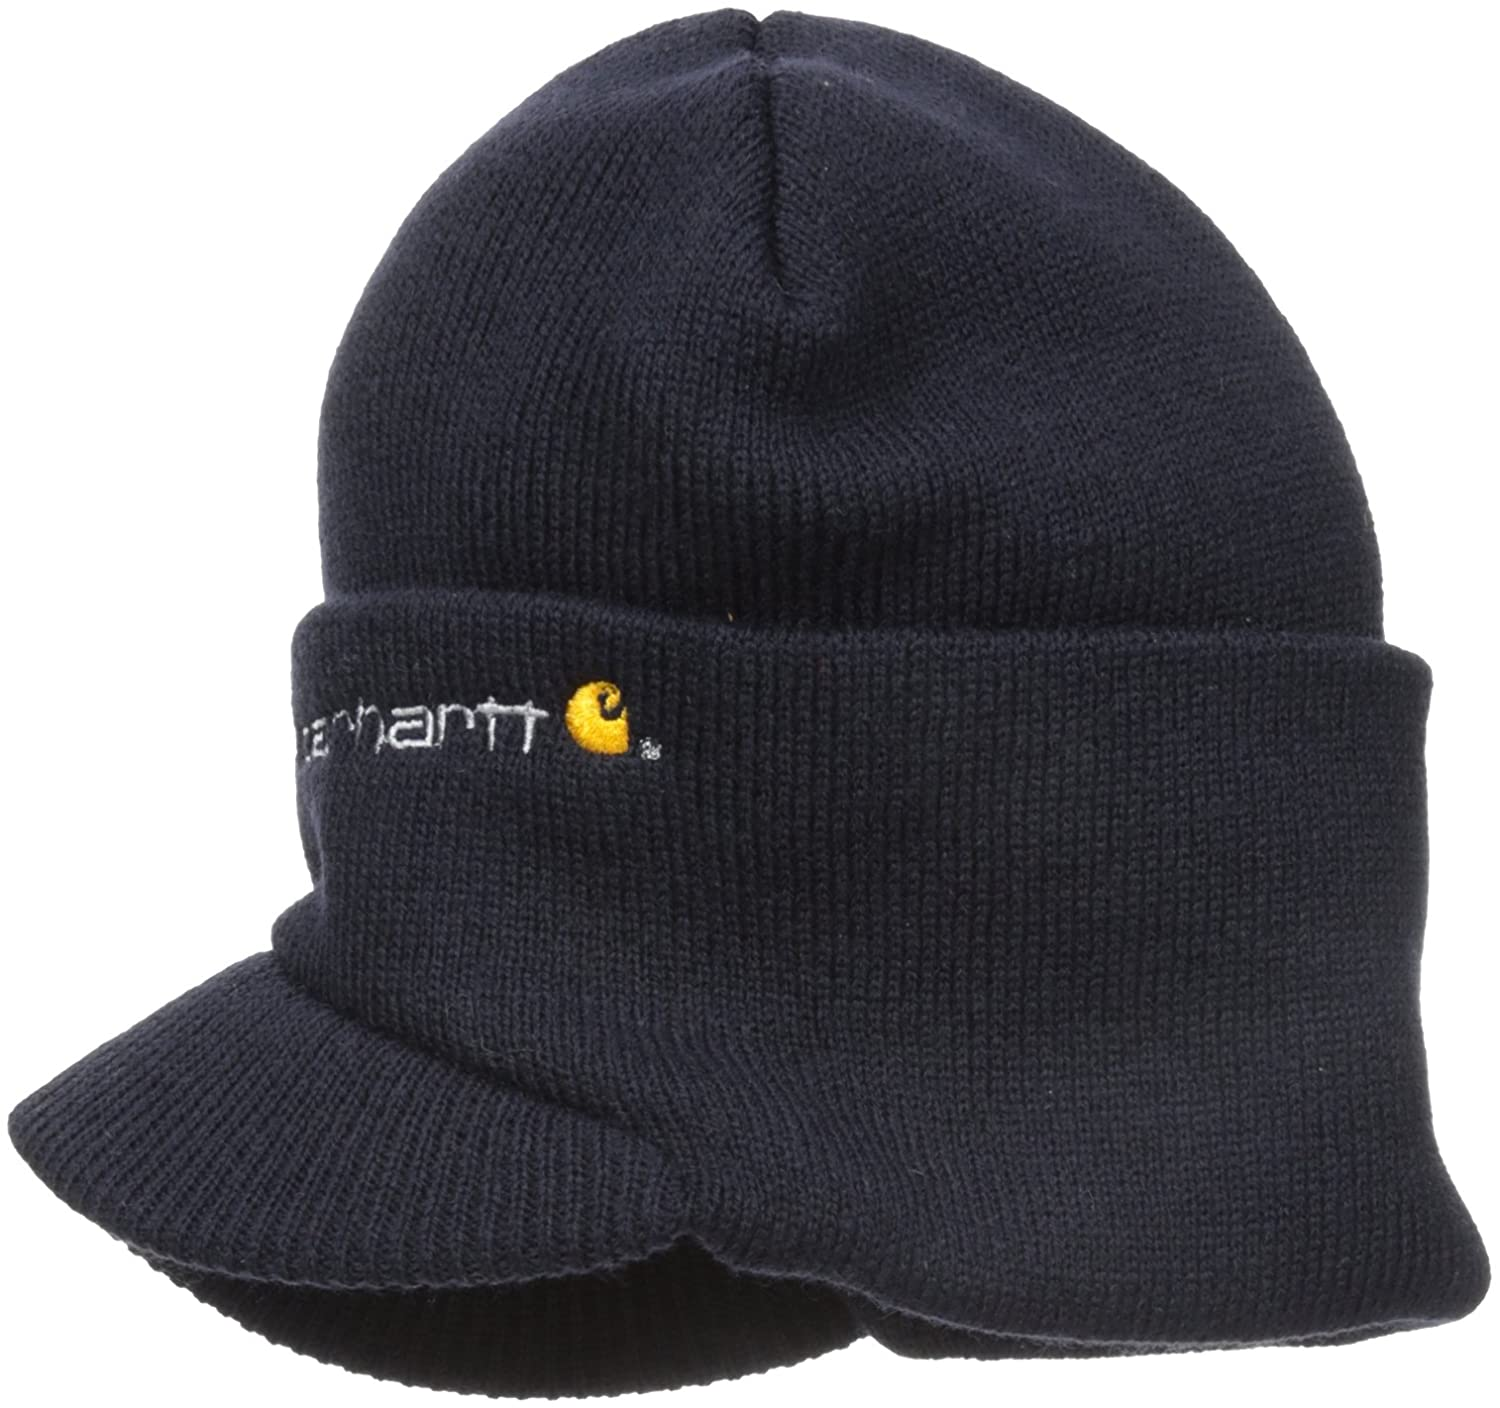 c21034b1 Carhartt Men's Knit Hat With Visor at Amazon Men's Clothing store: Skull  Caps